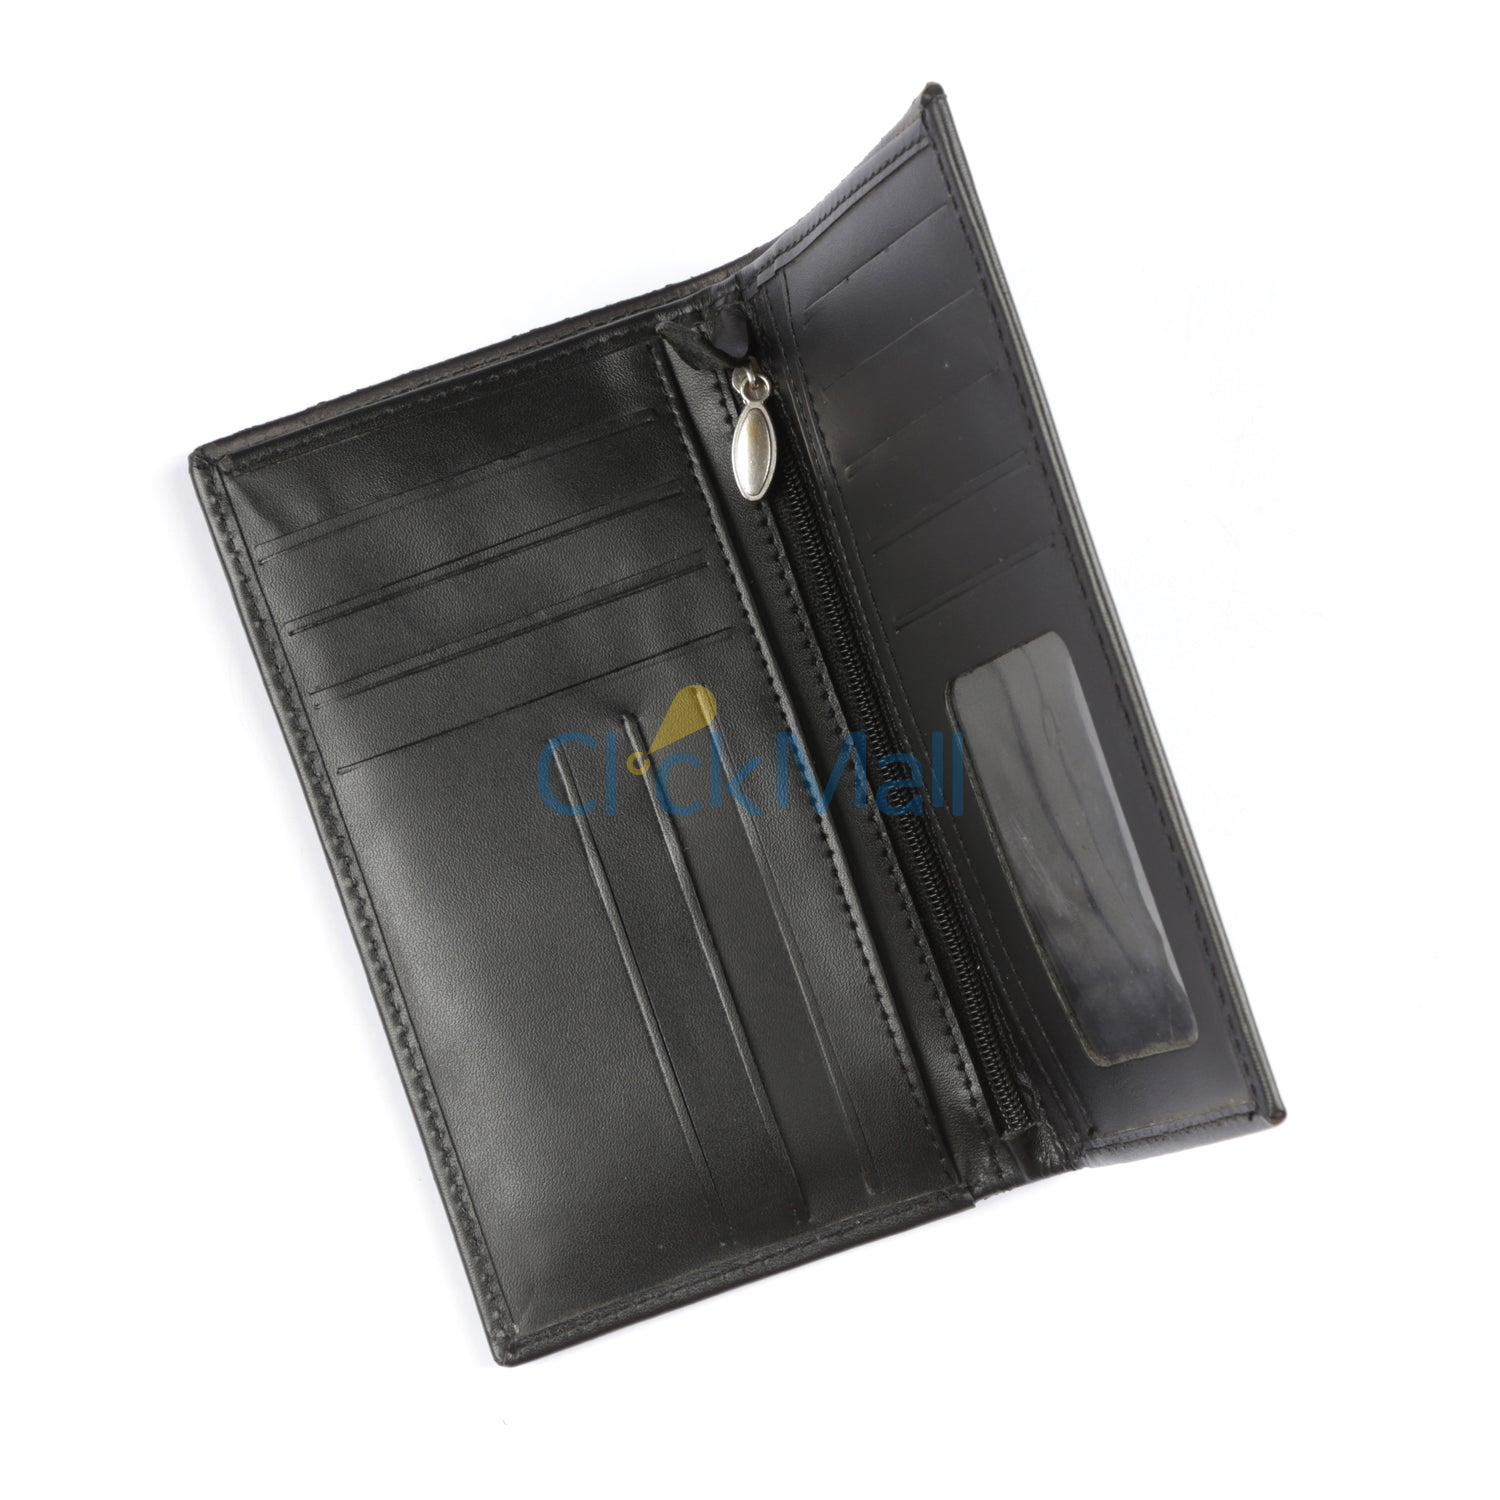 Sheikh Leather Black Leather Wallet-09 SLC-24C-BL